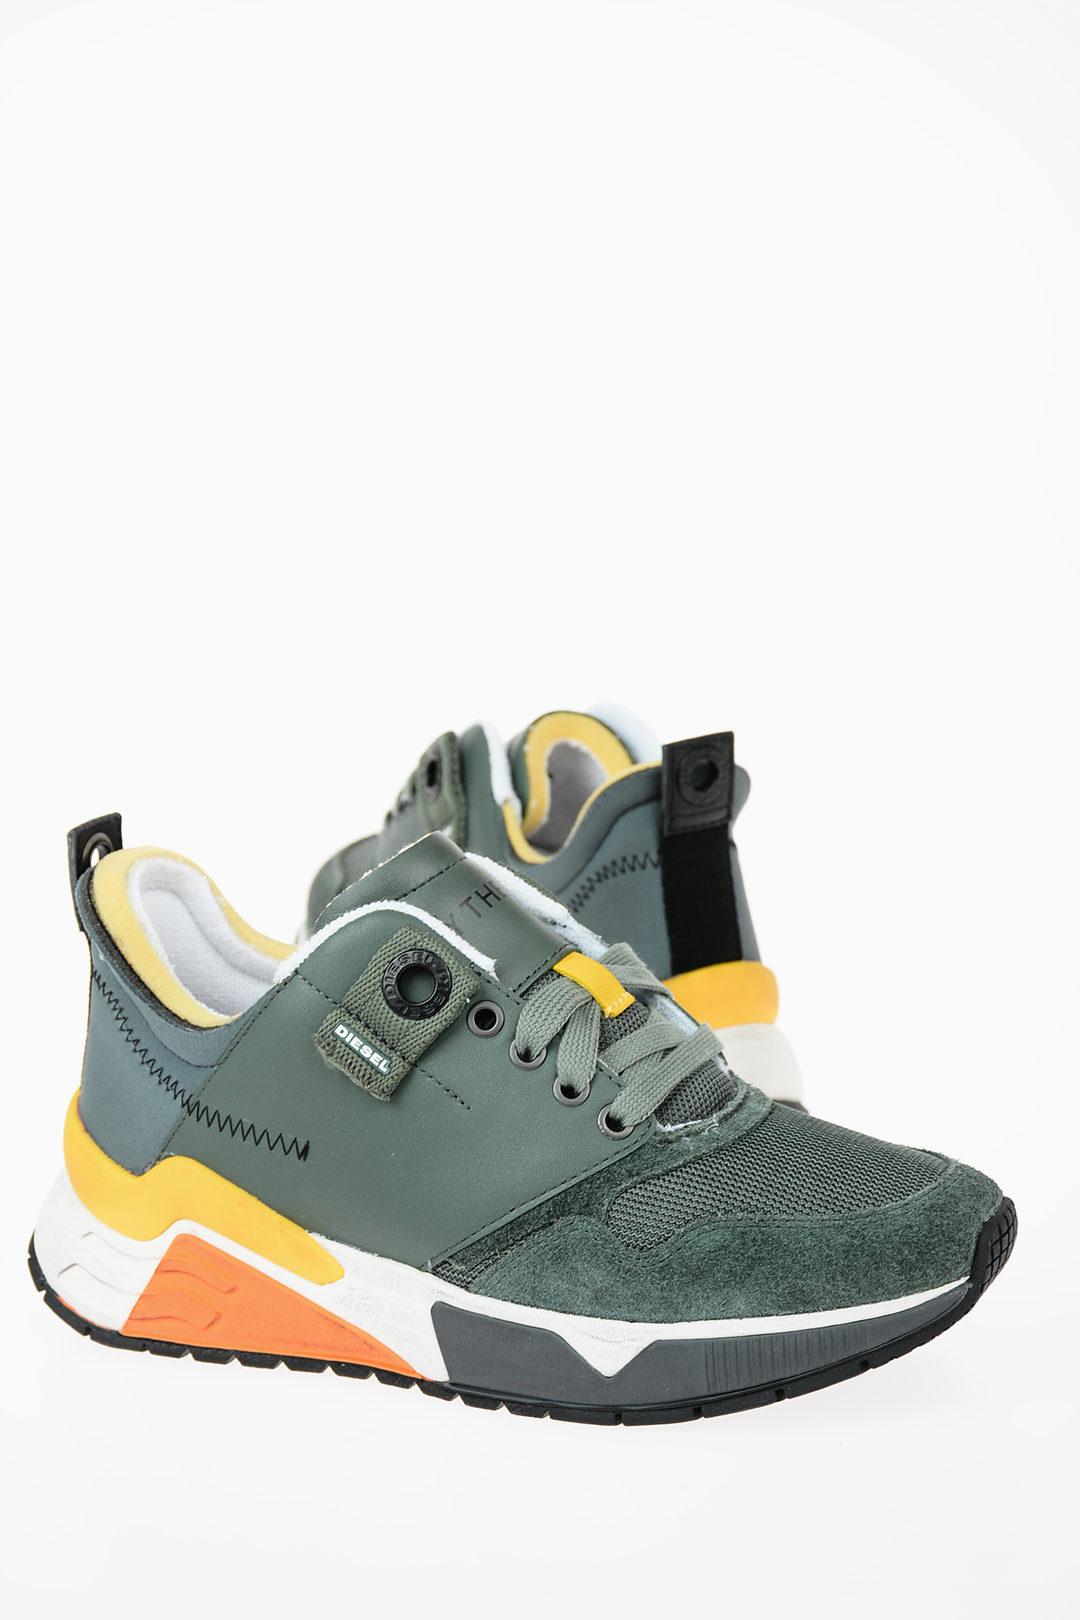 BRENTHA LC Sneakers men - Glamood Outlet